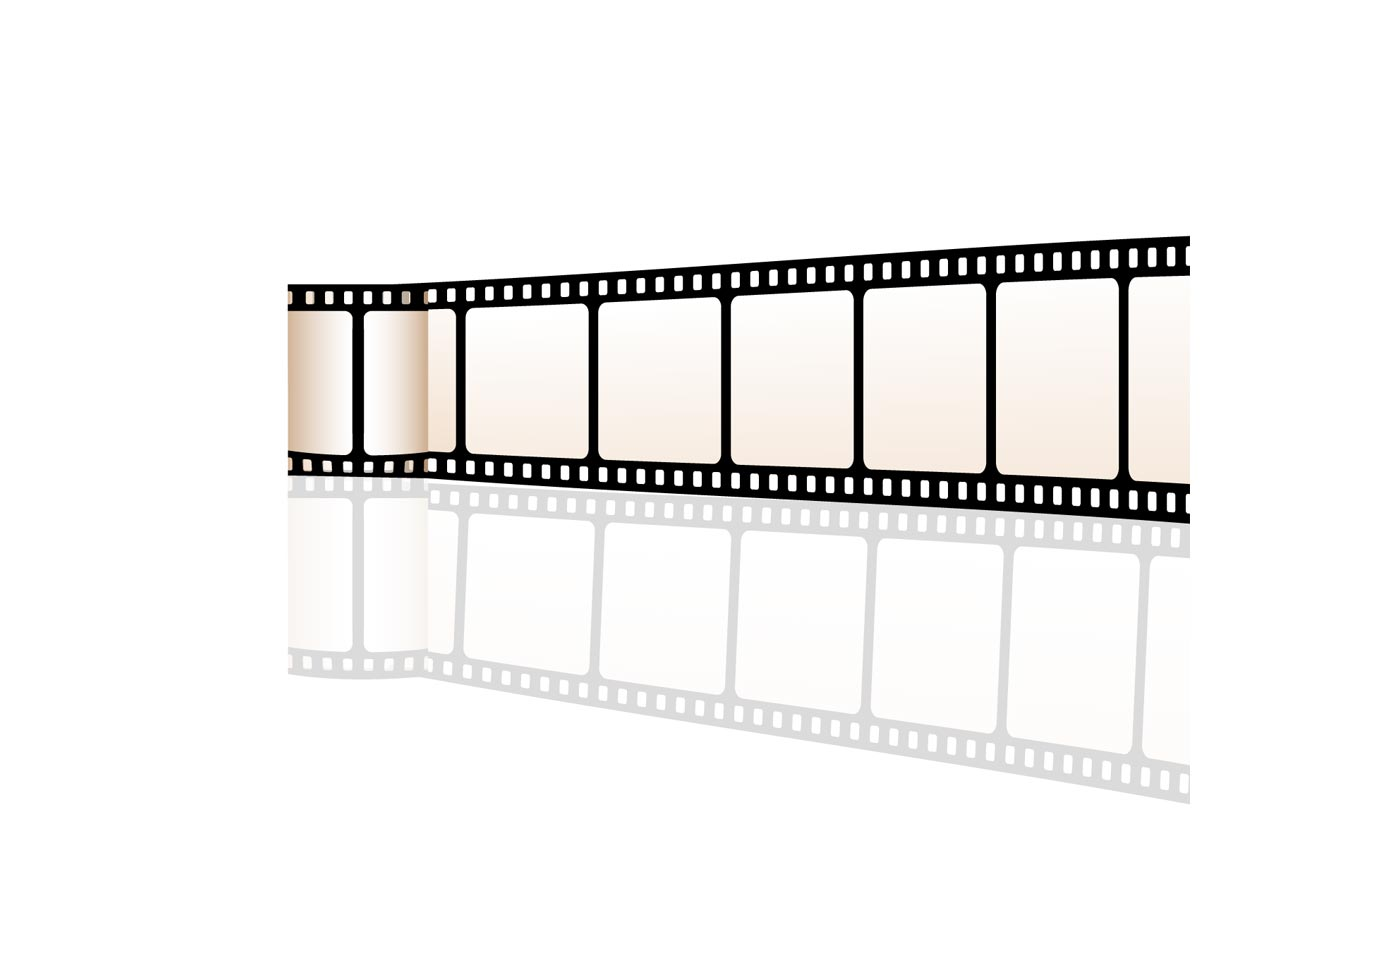 Image Result For Review Film Wedding